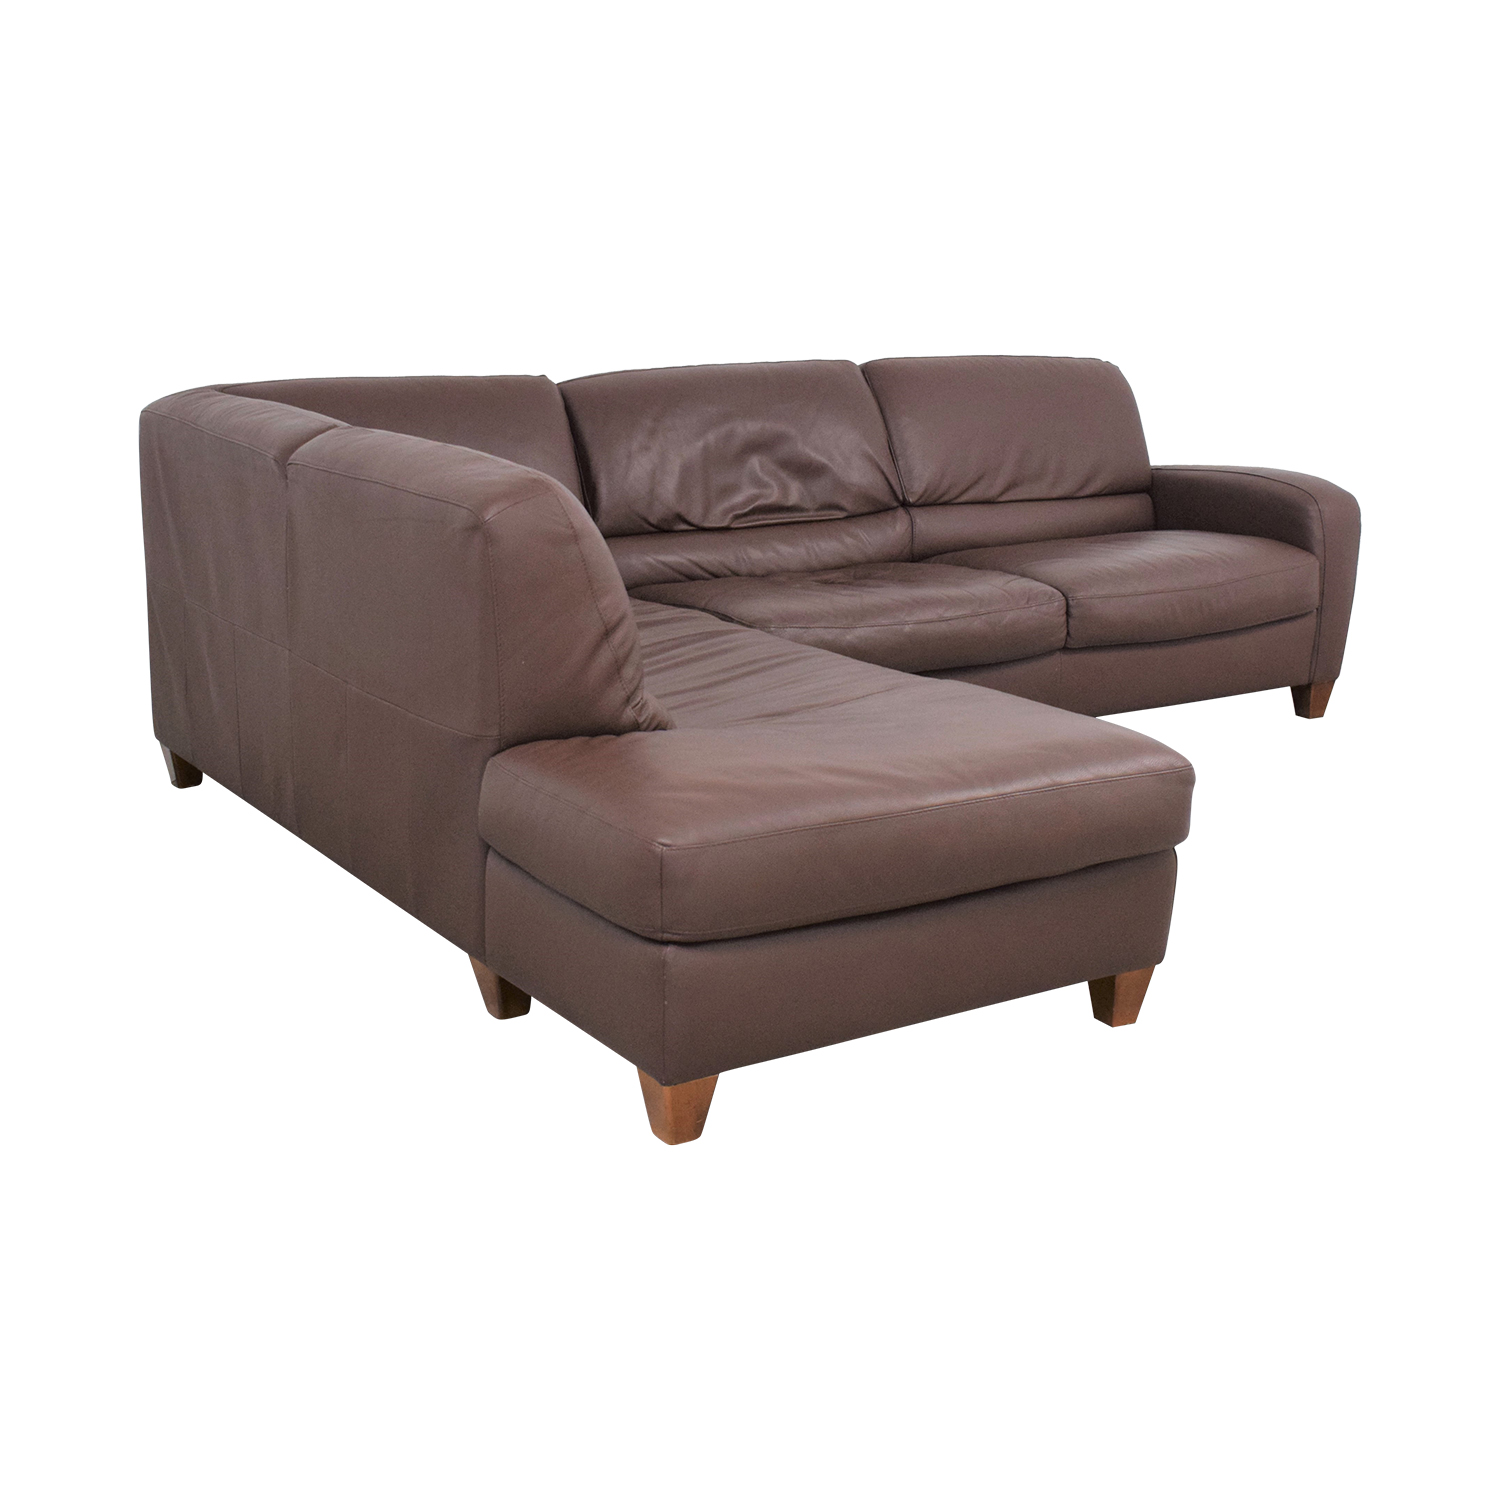 Italsofa Italsofa Sectional Sofa with Chaise